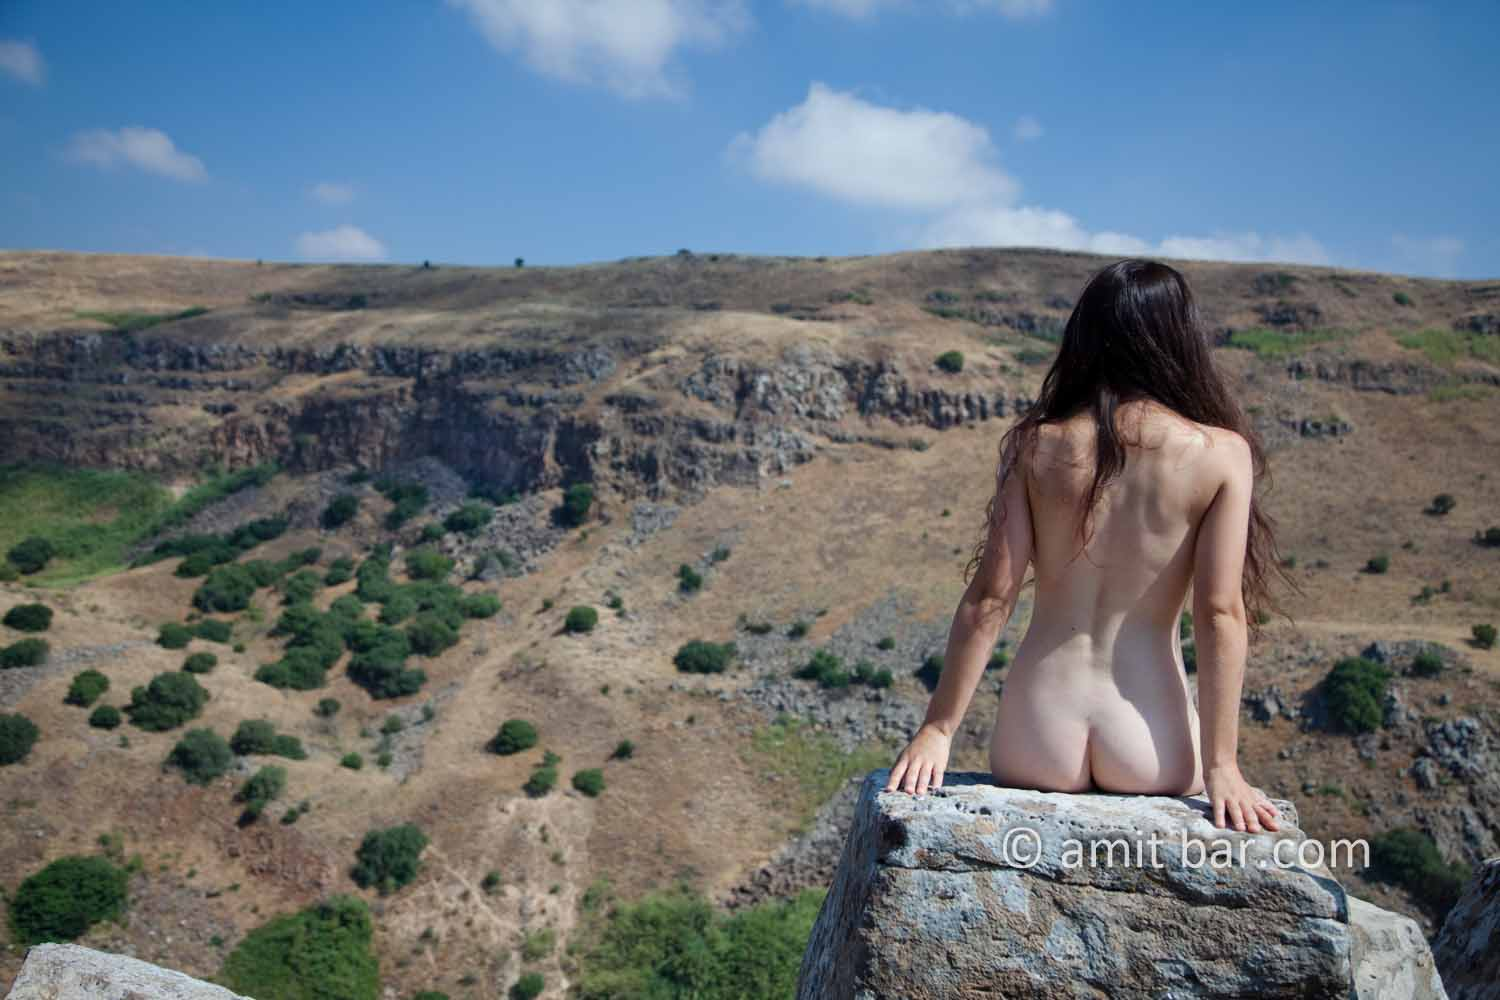 Gamla III: Nude model at Gamla fortress, the Golan Heights